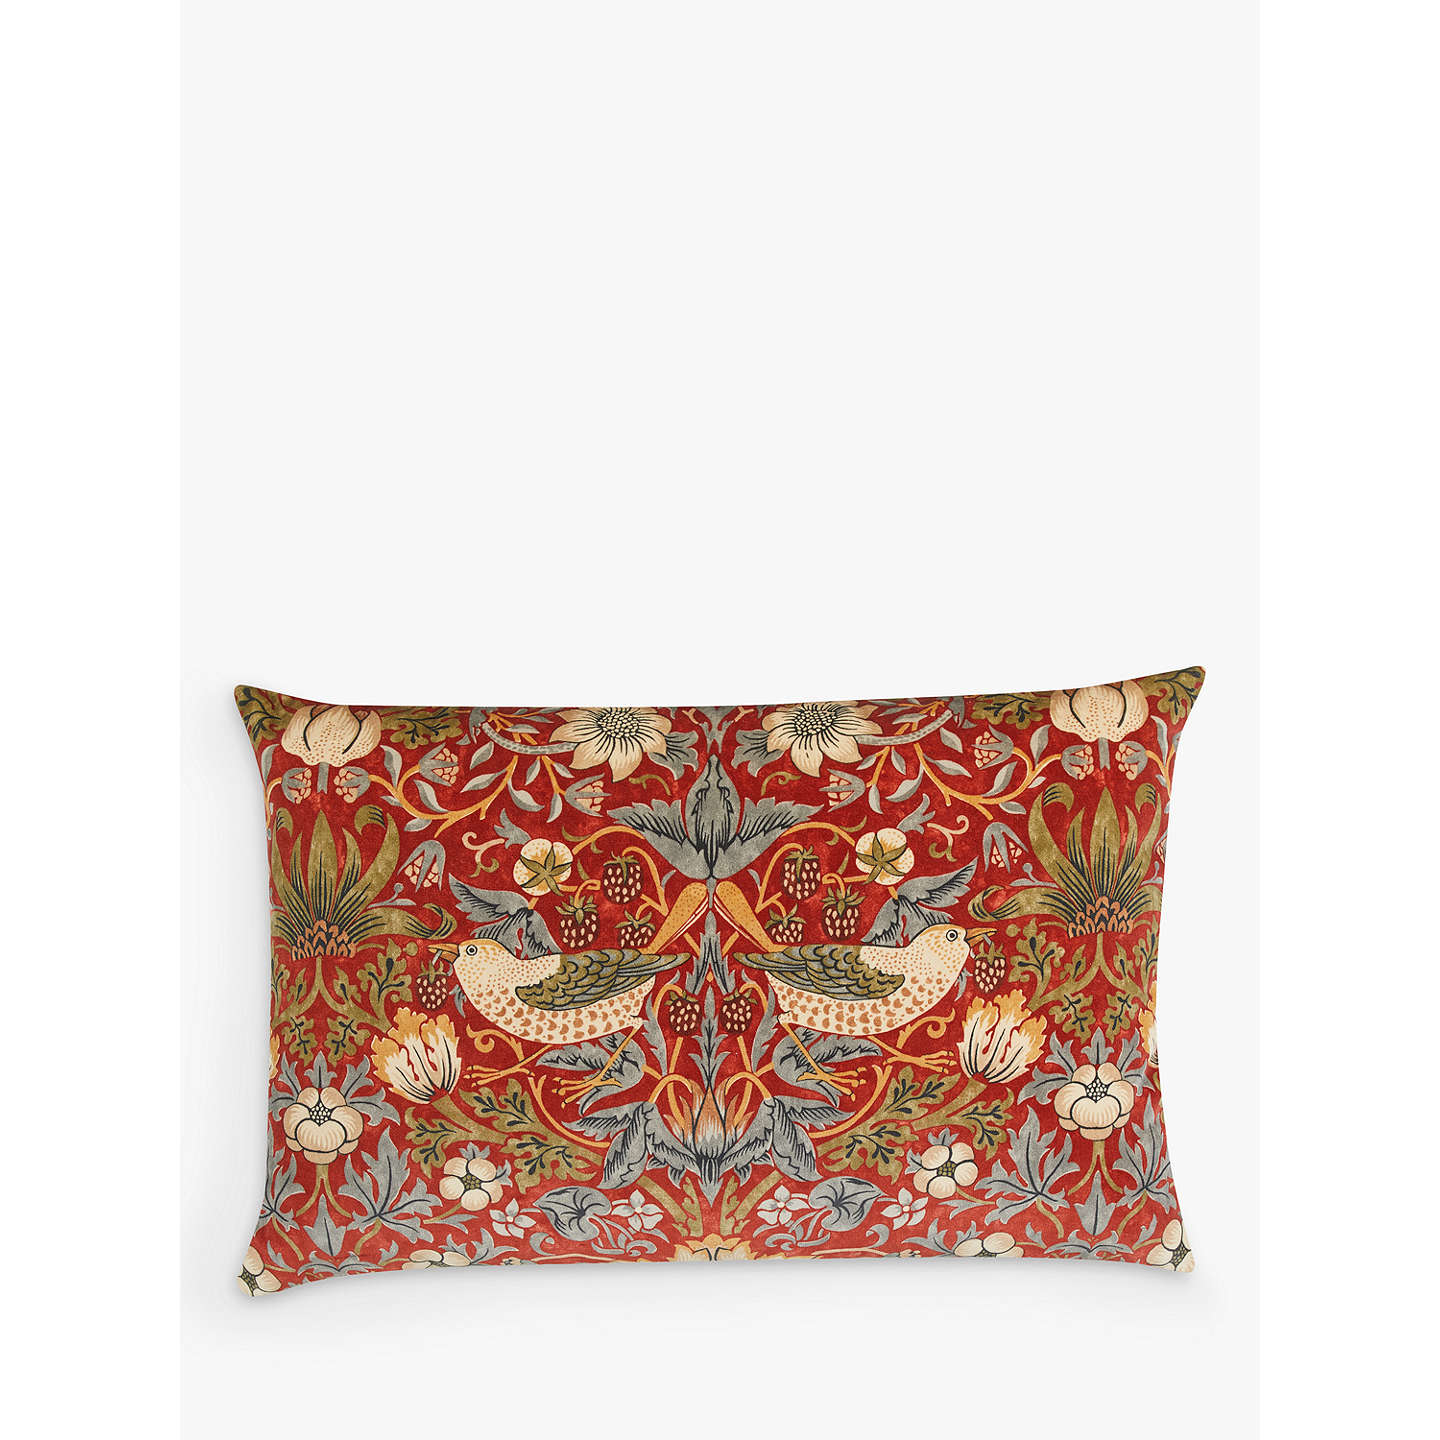 BuyMorris & Co. Strawberry Thief Velvet Cushion, Red Online at johnlewis.com